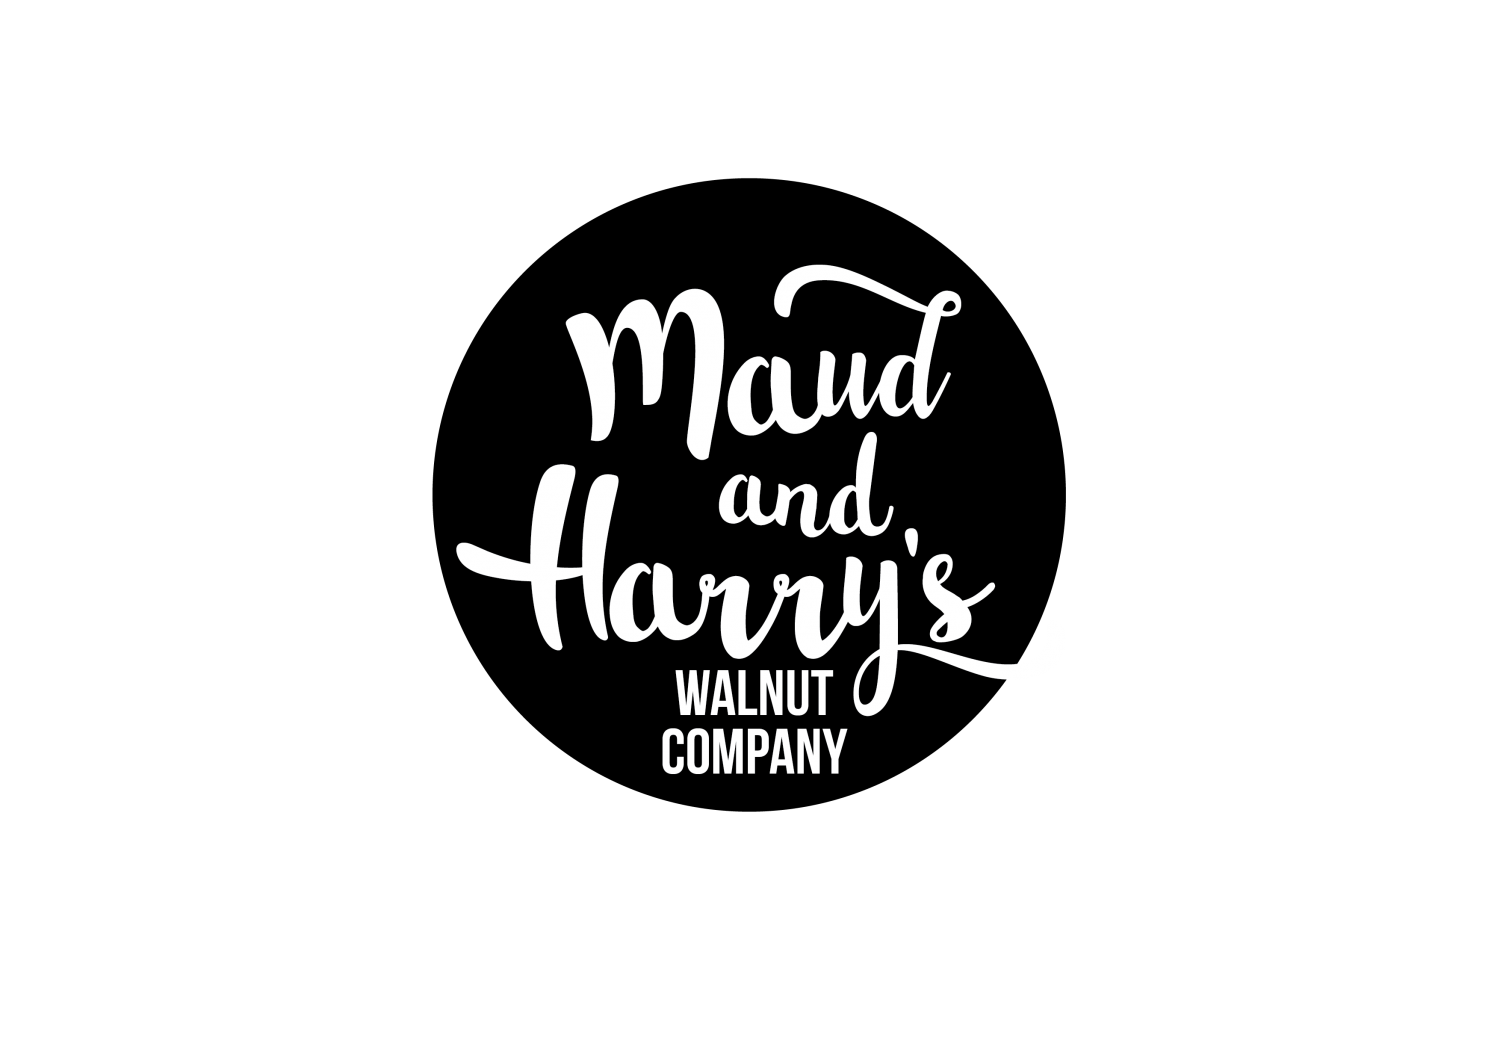 Maud & Harry's Walnut Company